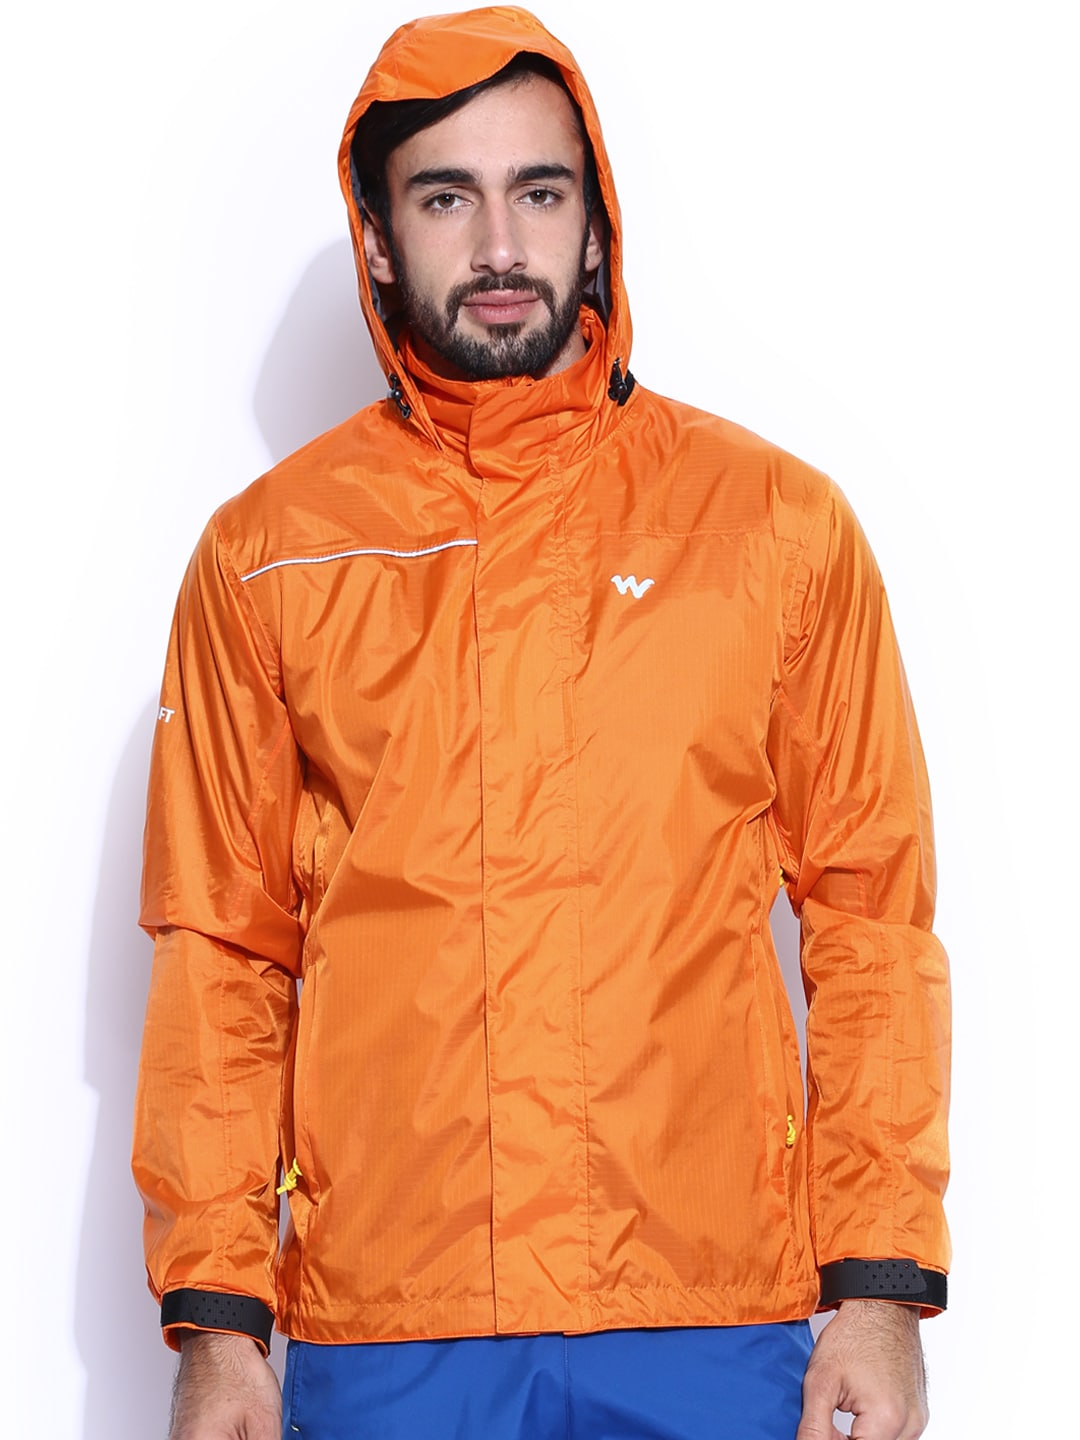 Wildcraft Orange Hooded Rain Jacket